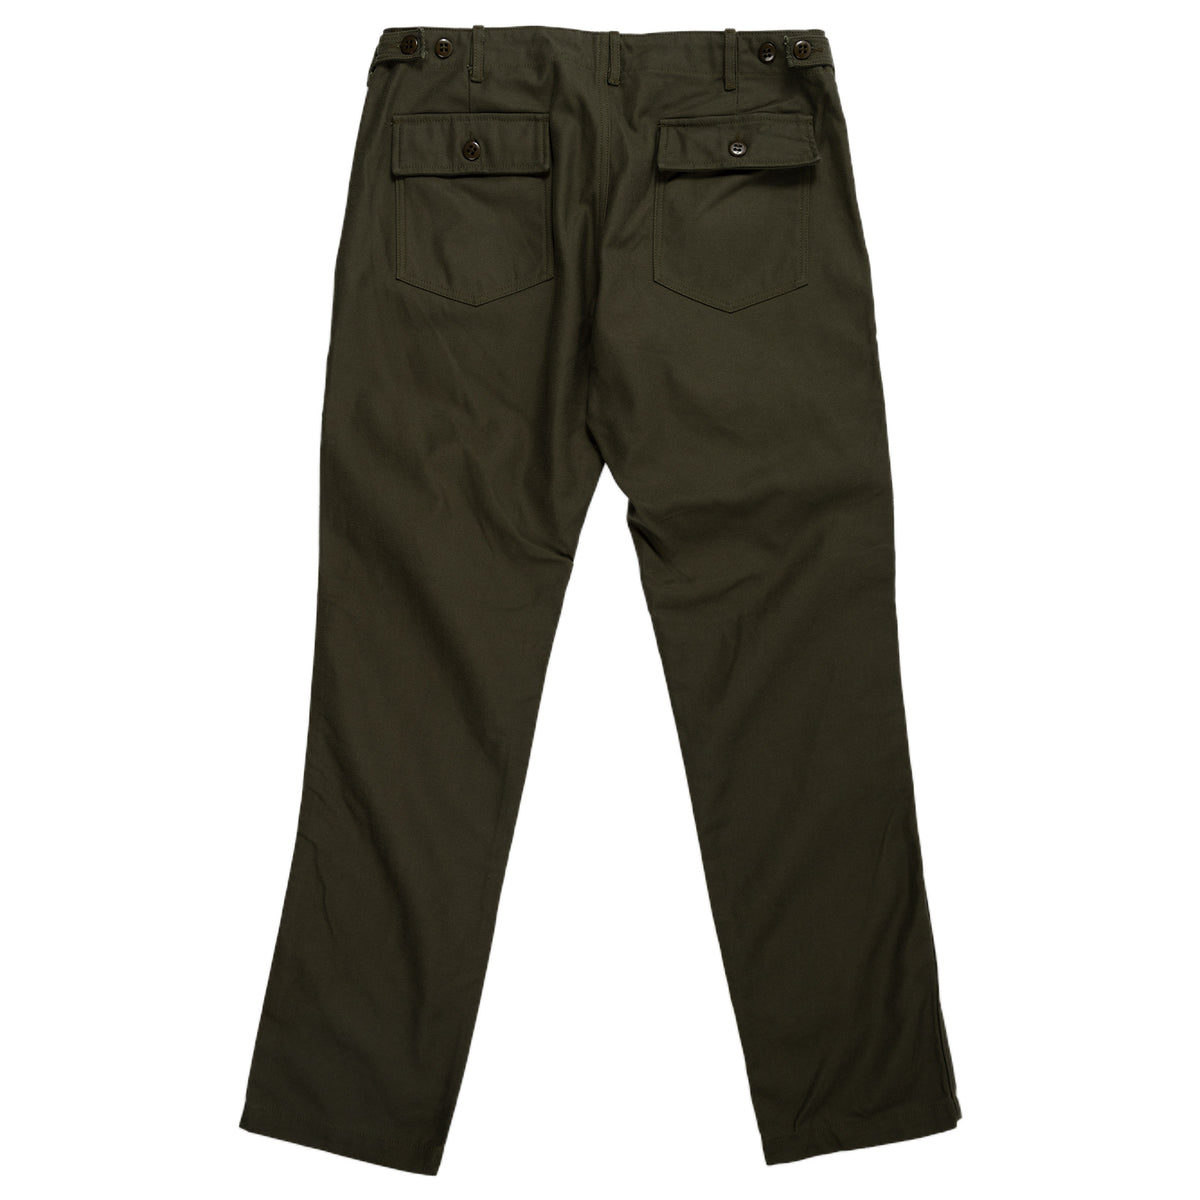 August Fifteenth Fatigue Trousers Back Twill Olive Back